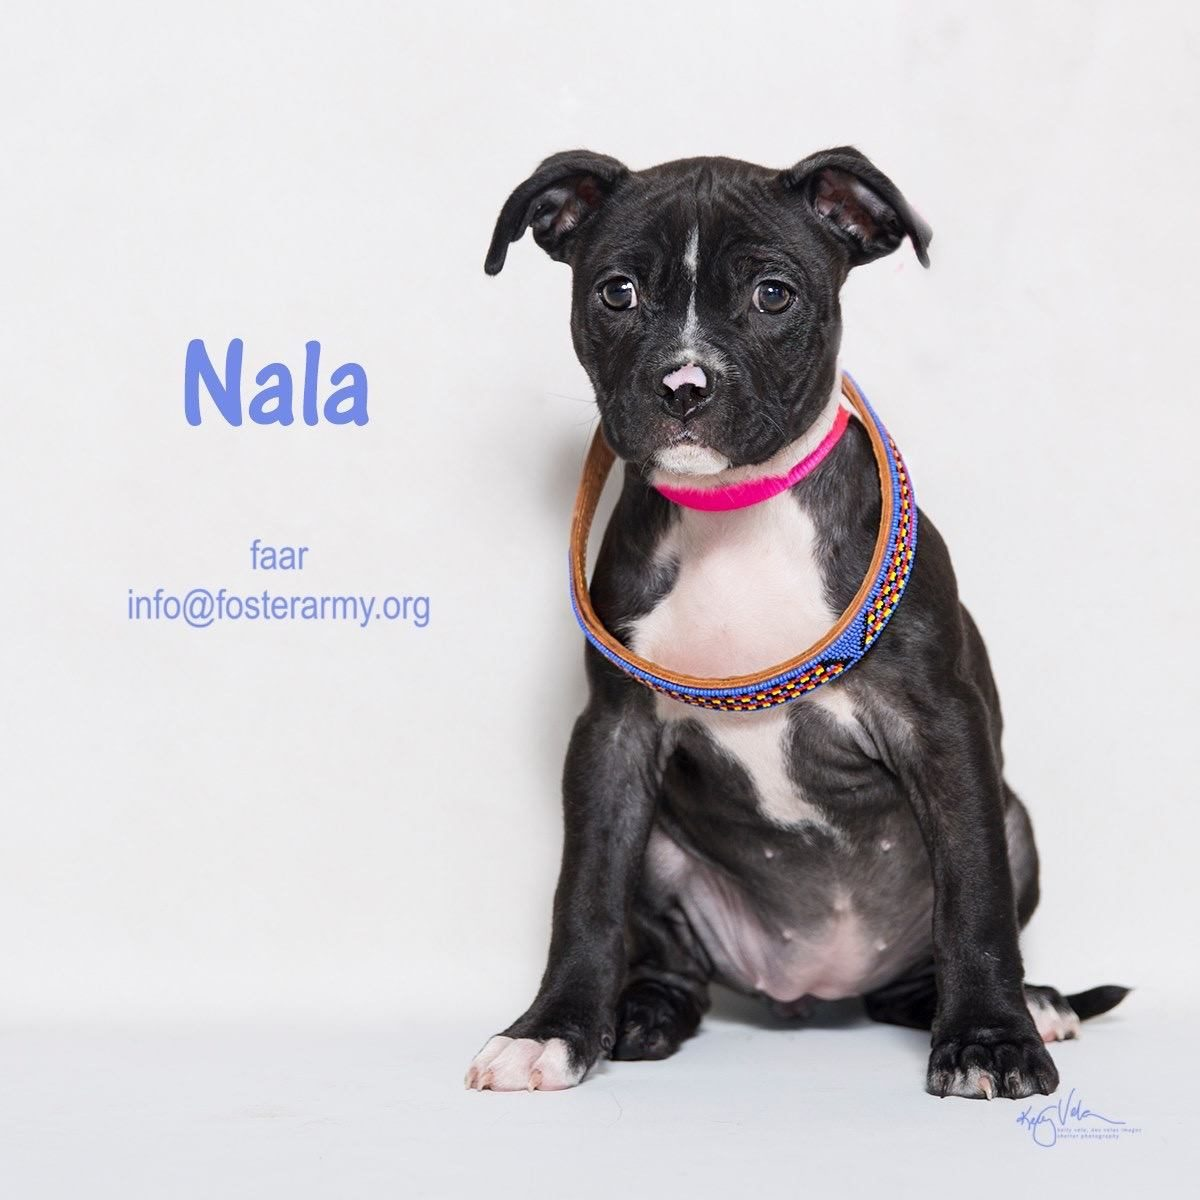 Adopt Nala and make her yours forever! Riverside, CA with Foster Army Animal Rescue